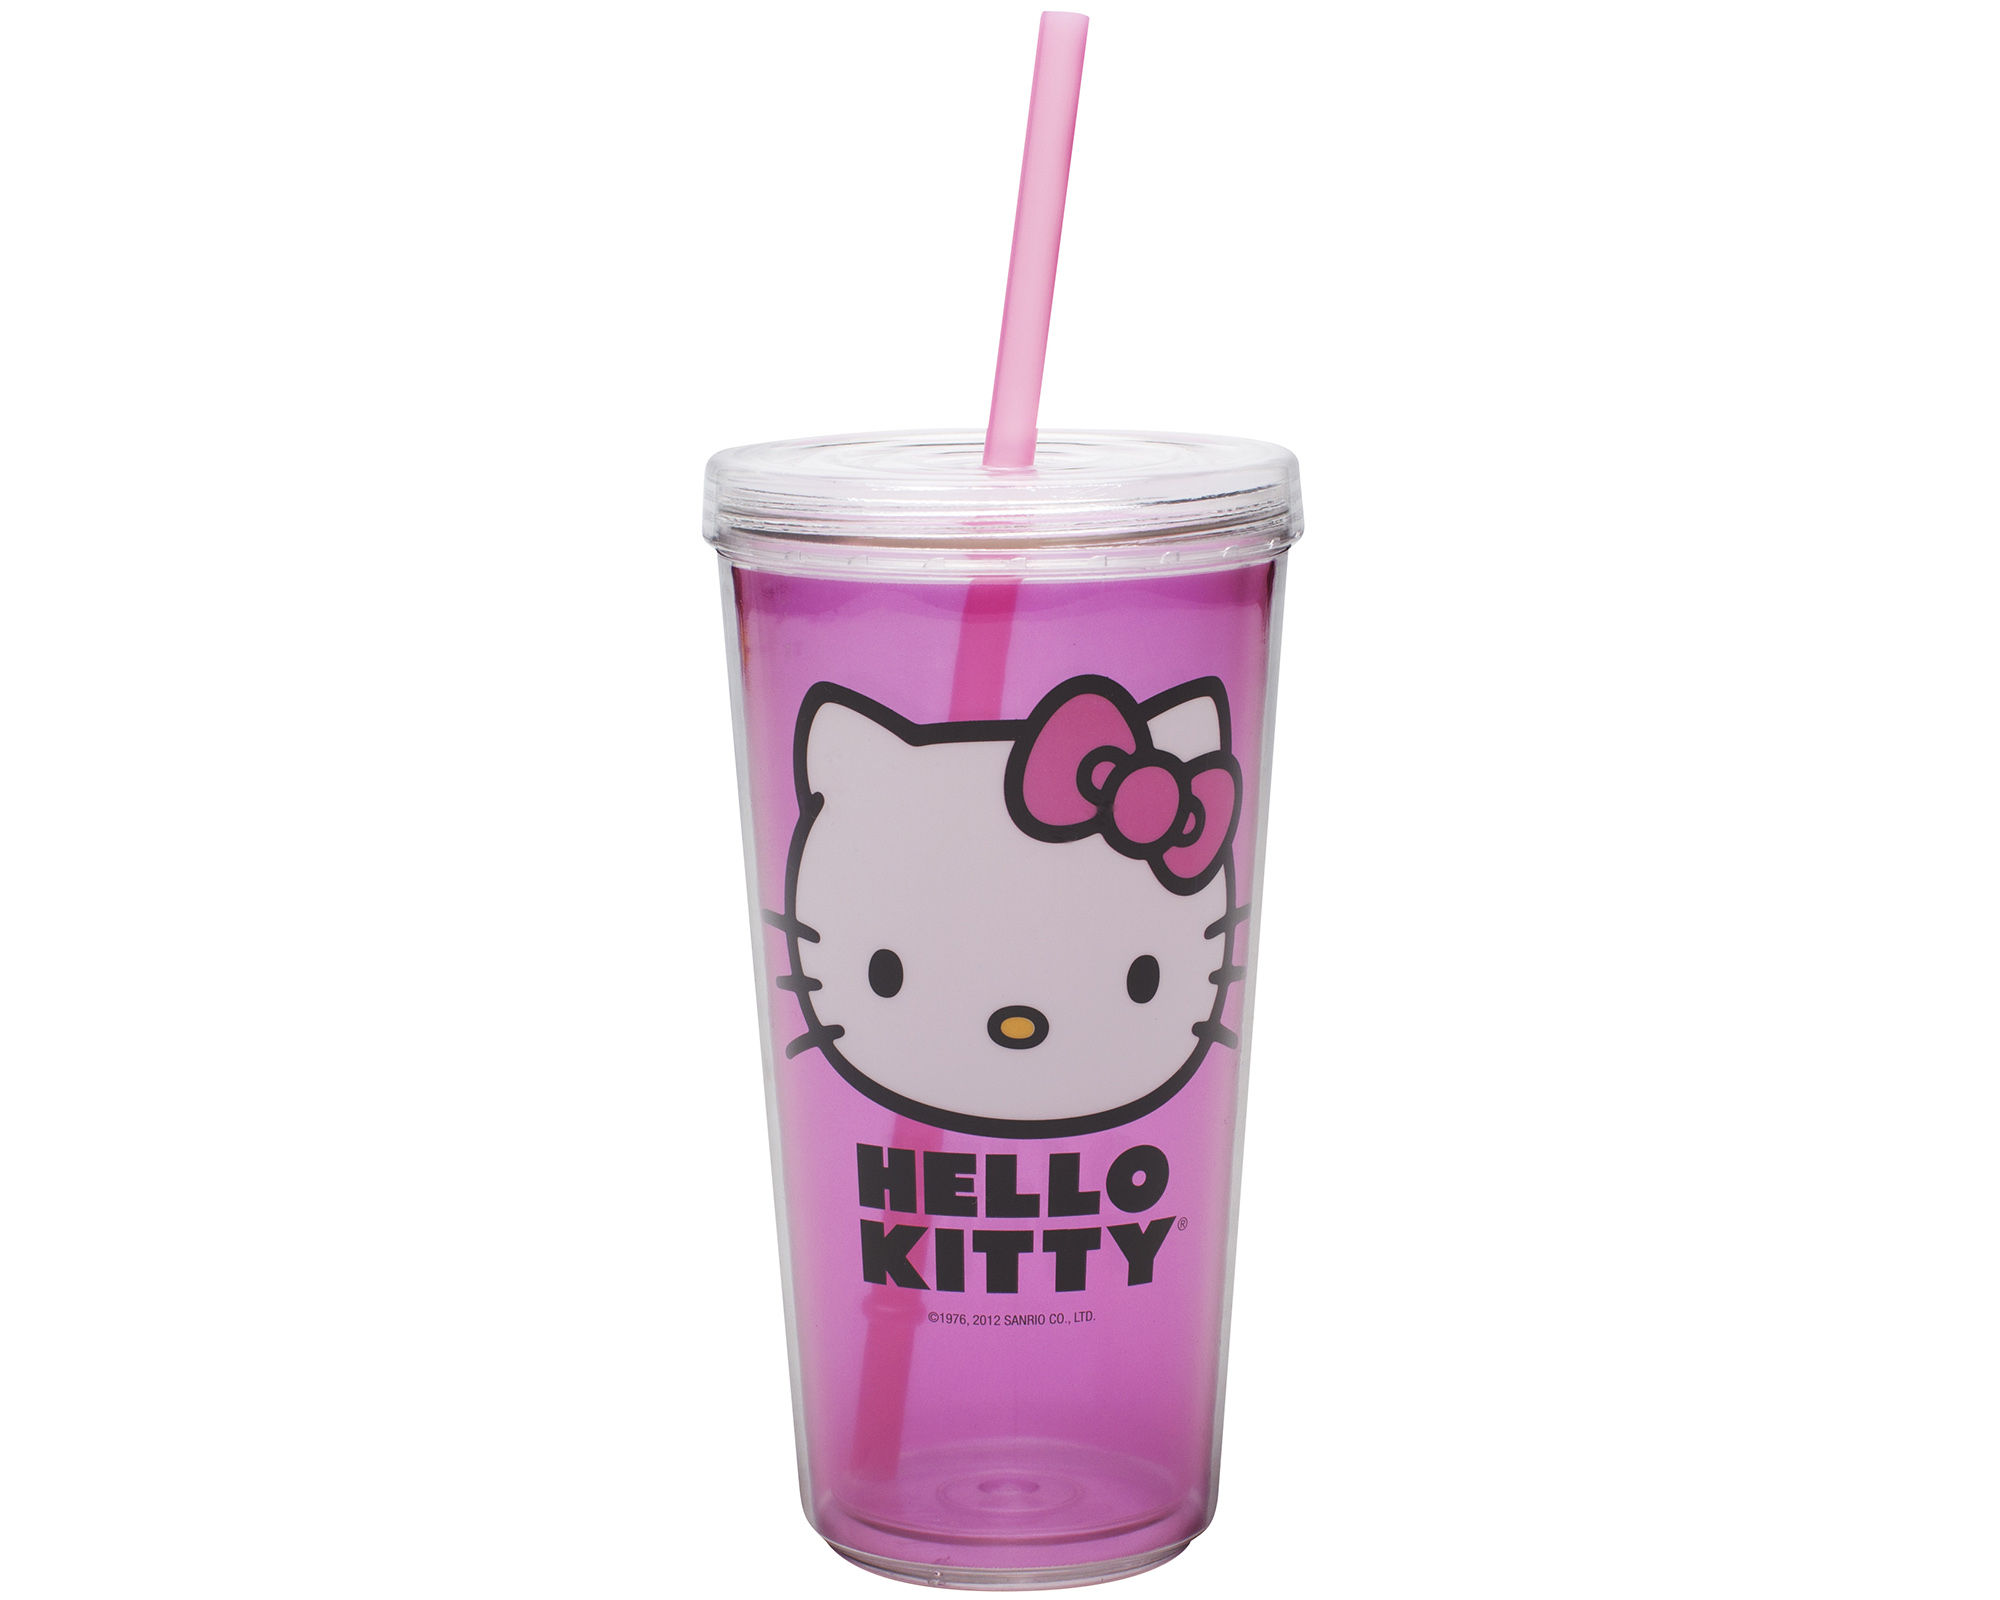 Zak Designs Hello Kitty 16-oz. Tumbler with Straw